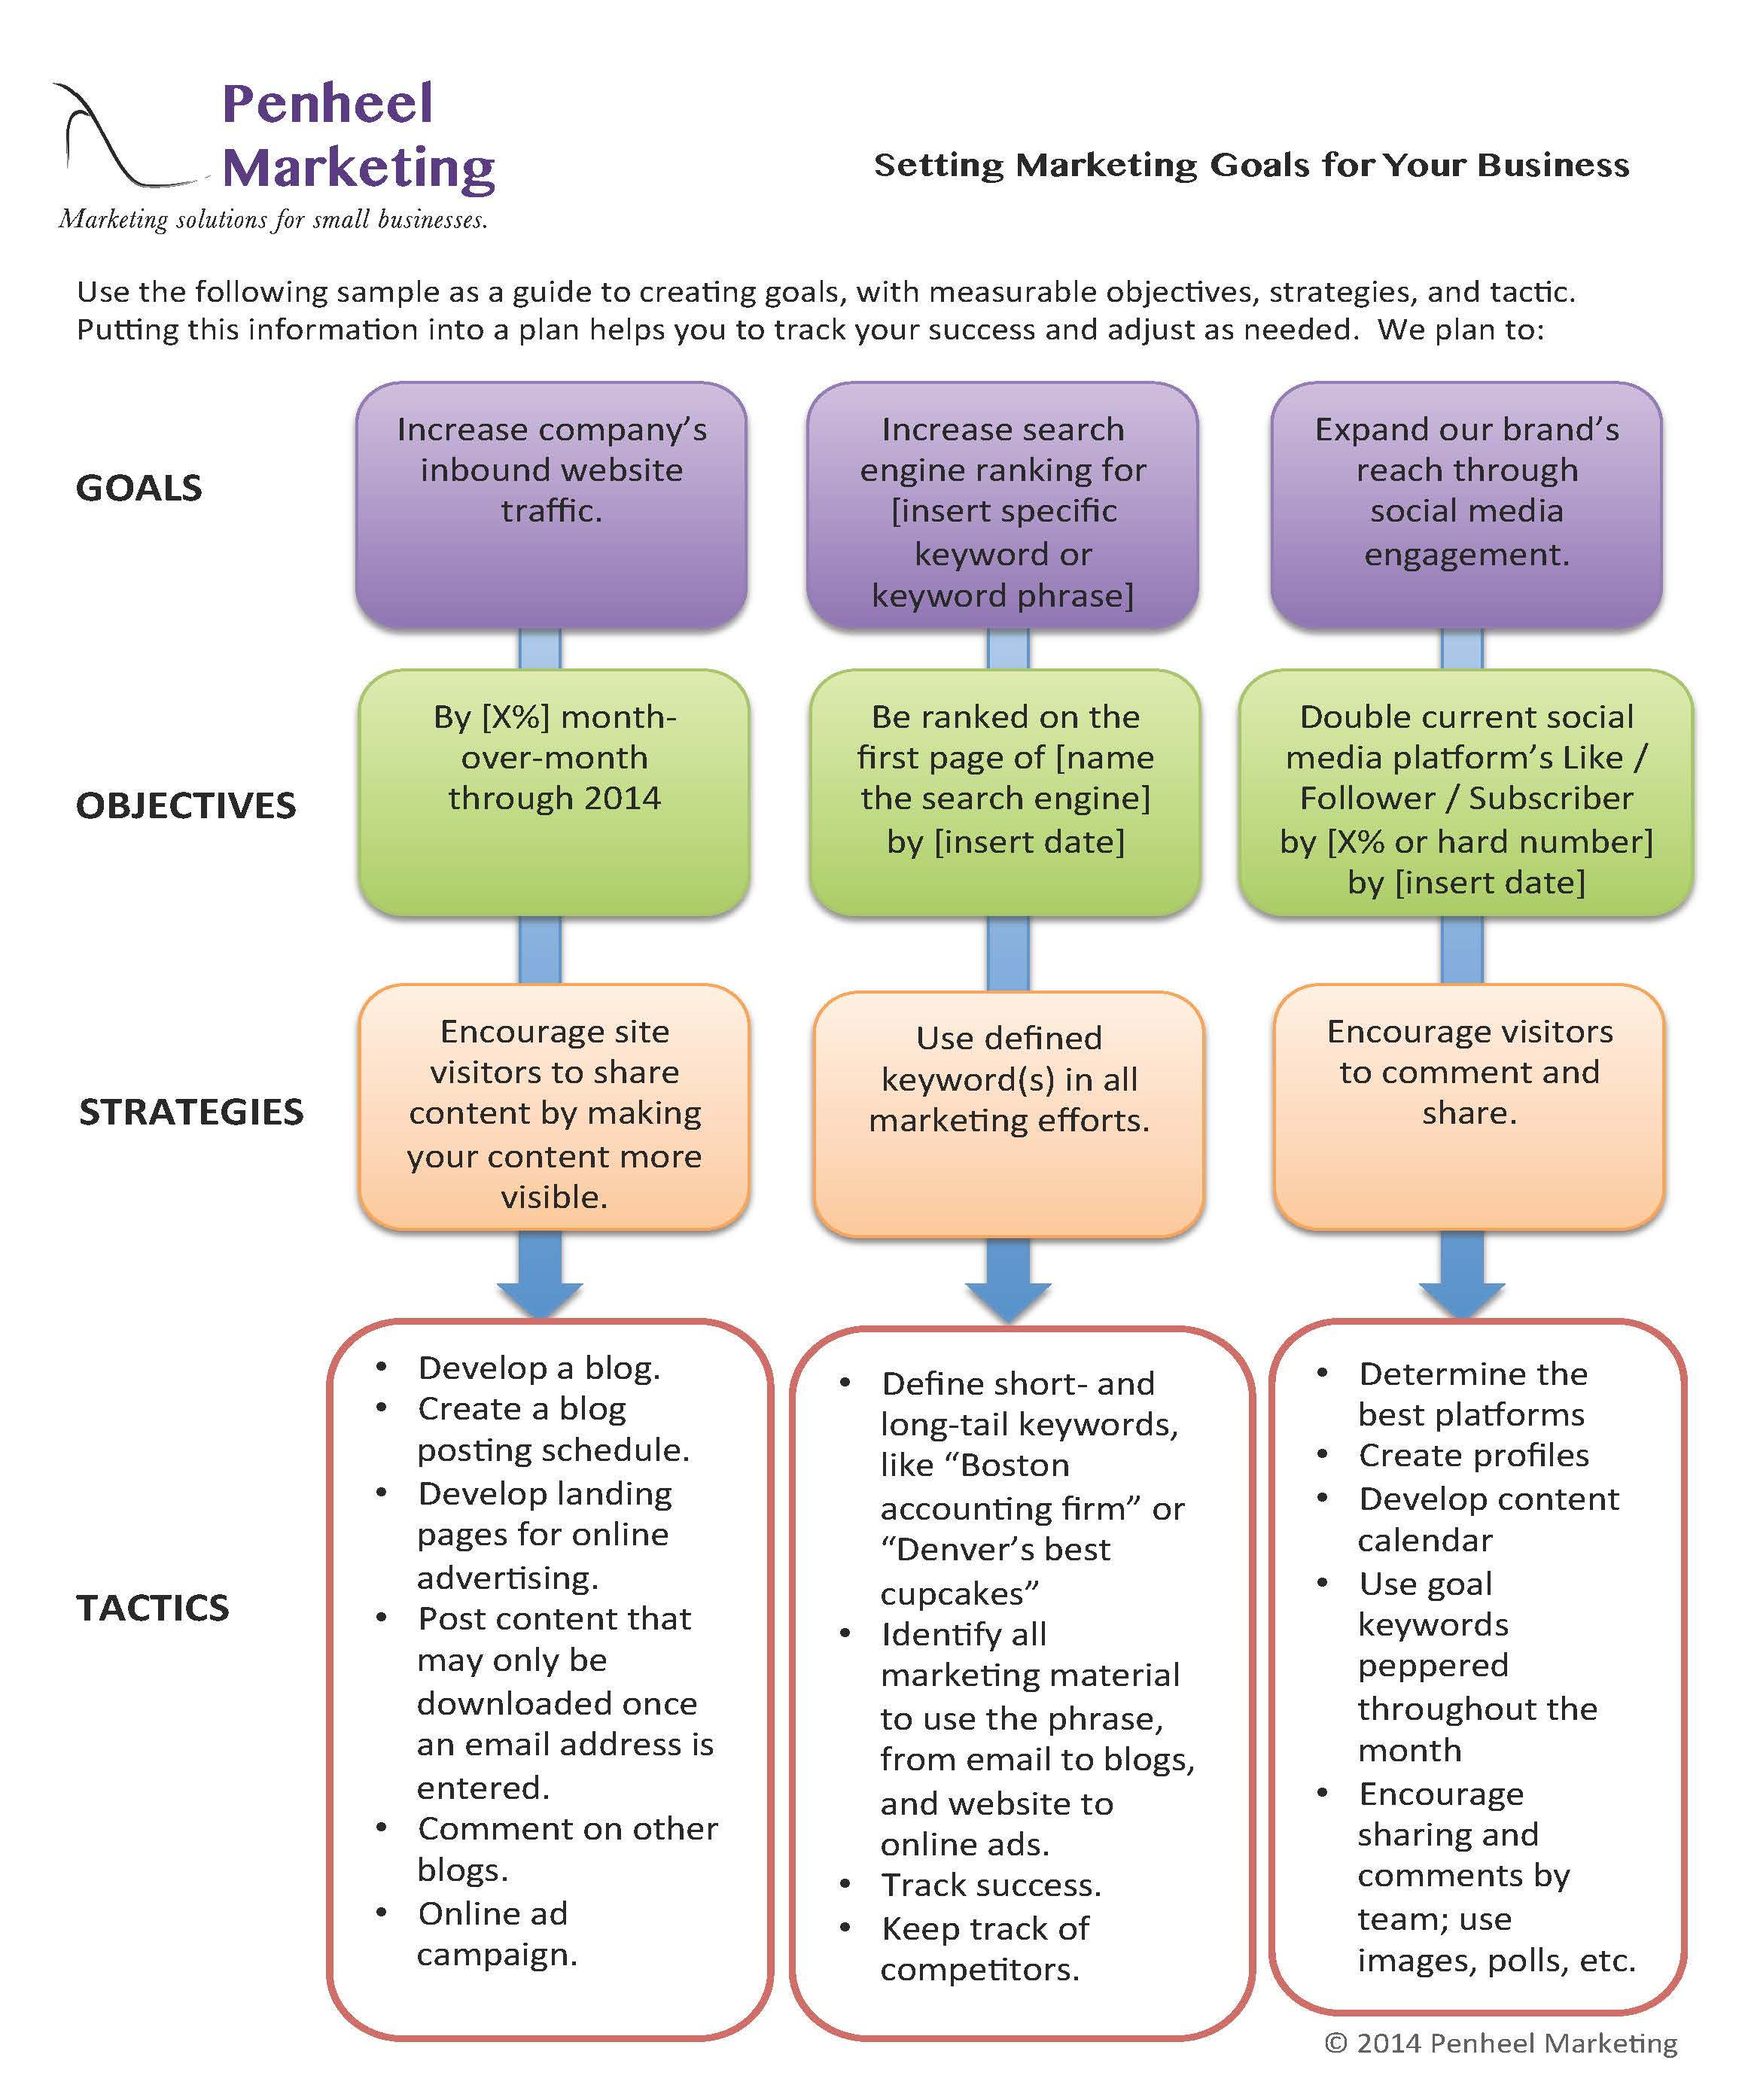 Marketing-Goal-Setting-Cheat-Sheet_full-size.jpg